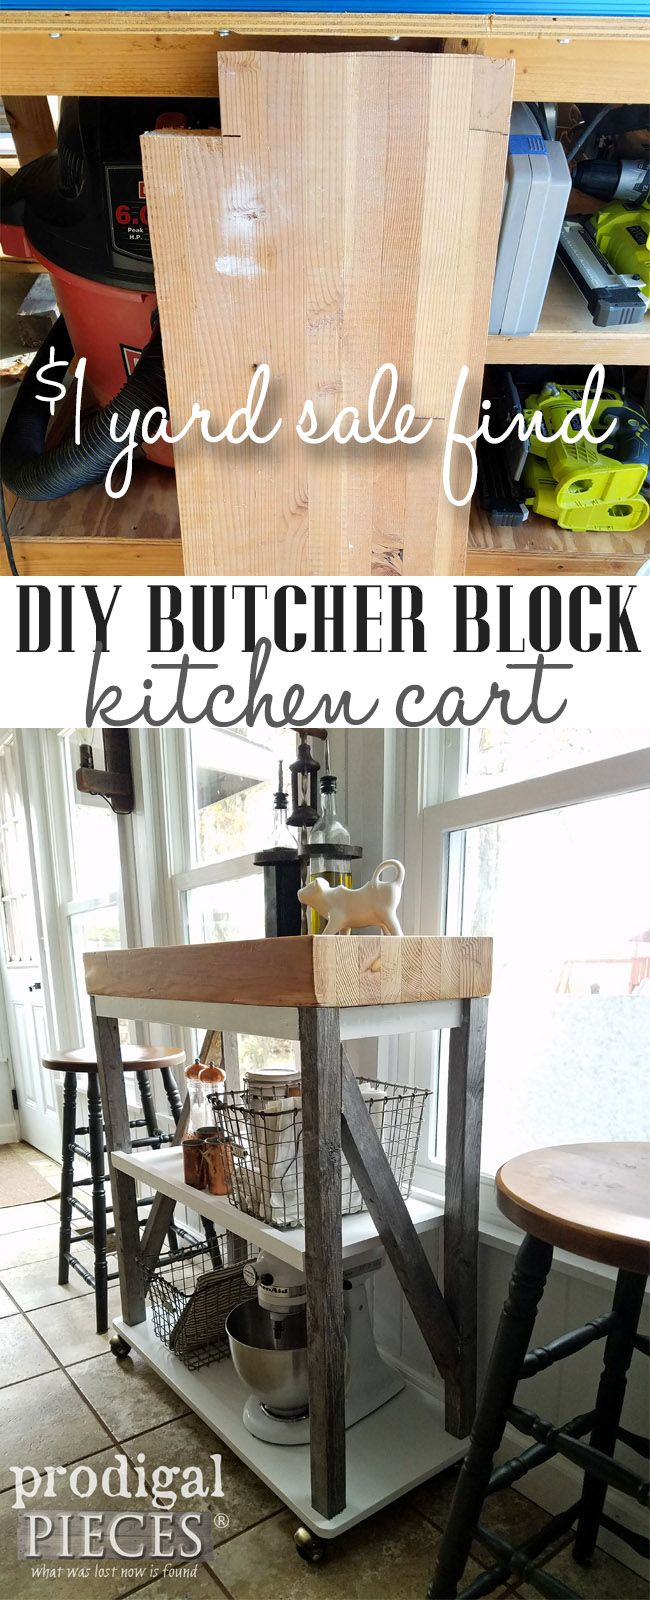 Check it out! A $1 garage sale find gets turned into a DIY Butcher Block Cart built by Larissa of Prodigal Pieces | prodigalpieces.com